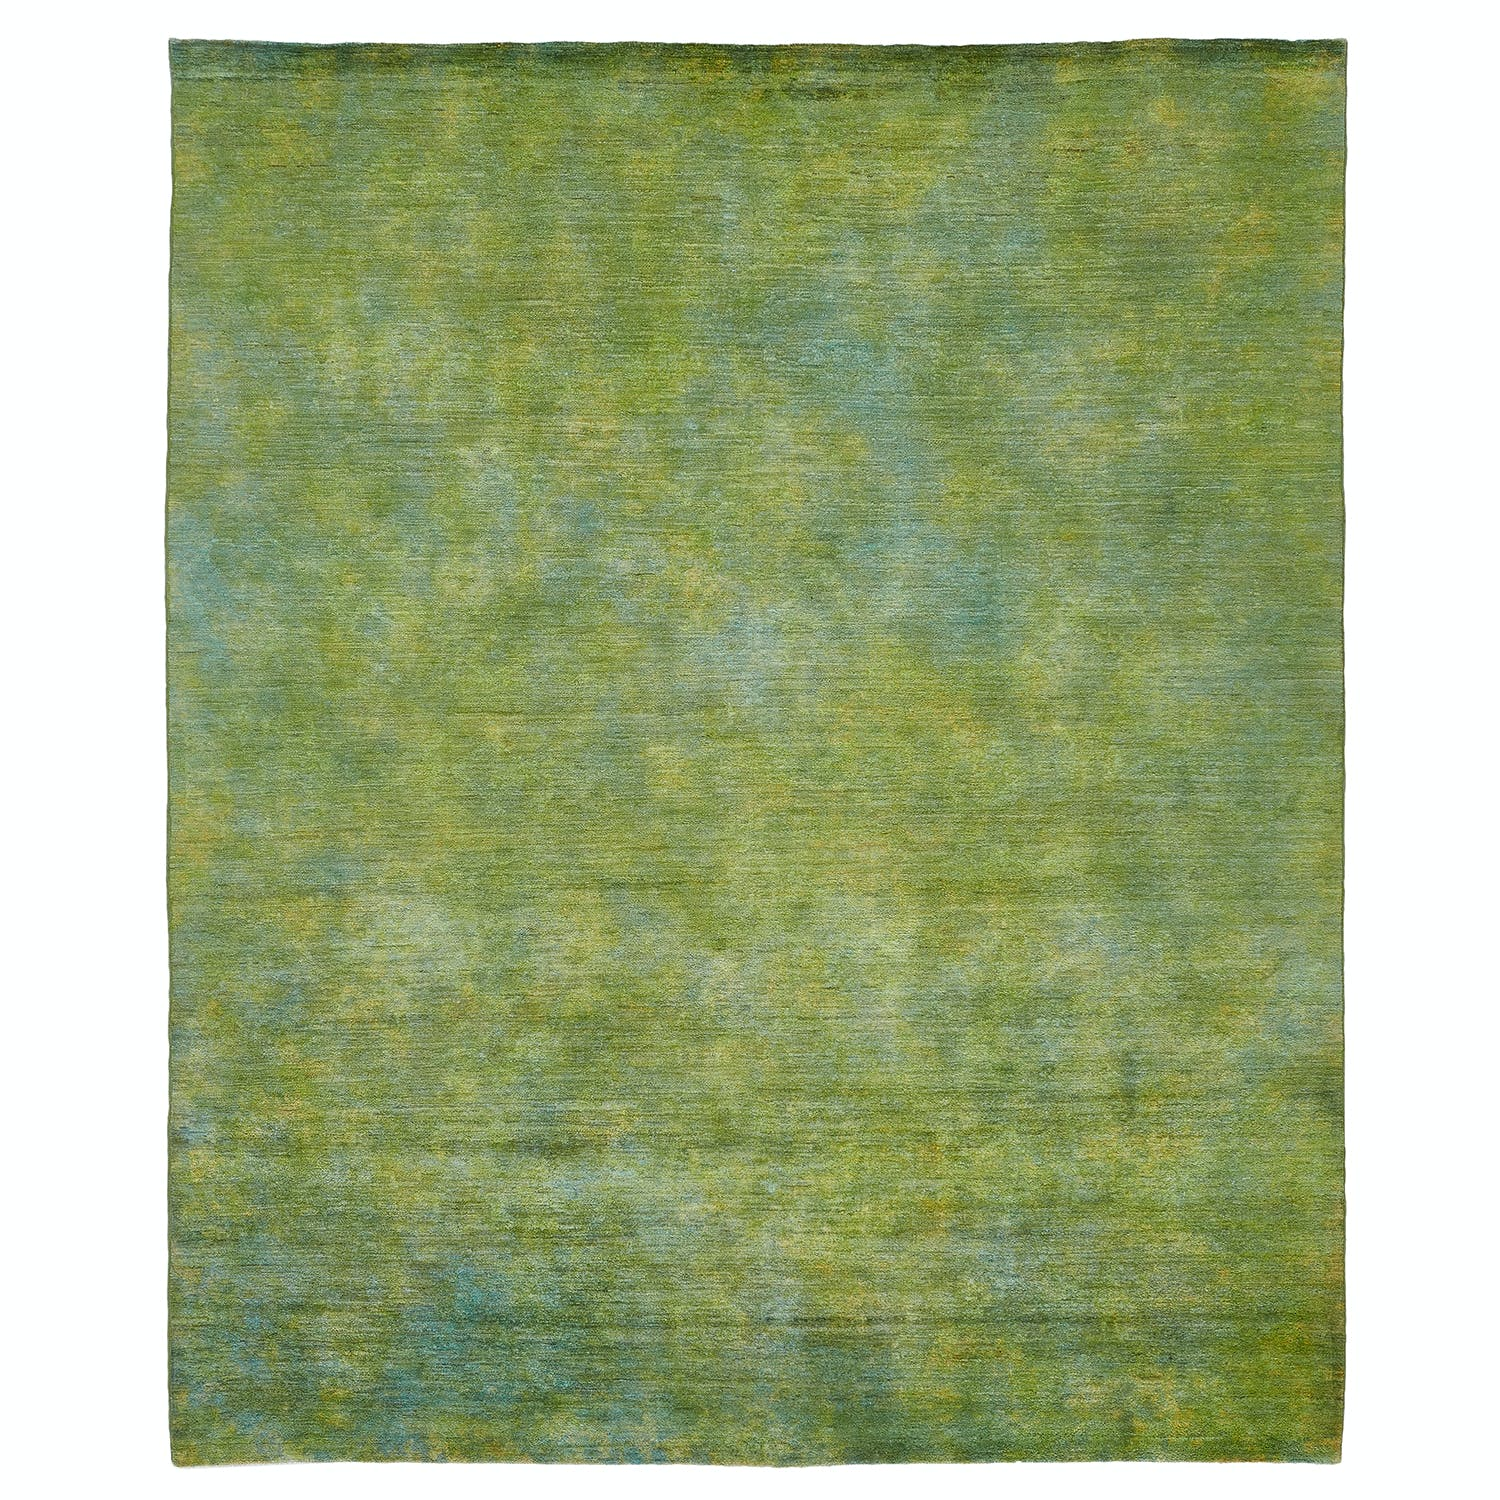 "Color Reform Spectrum Overdyed Rug - 8'1"" x 9'9"""